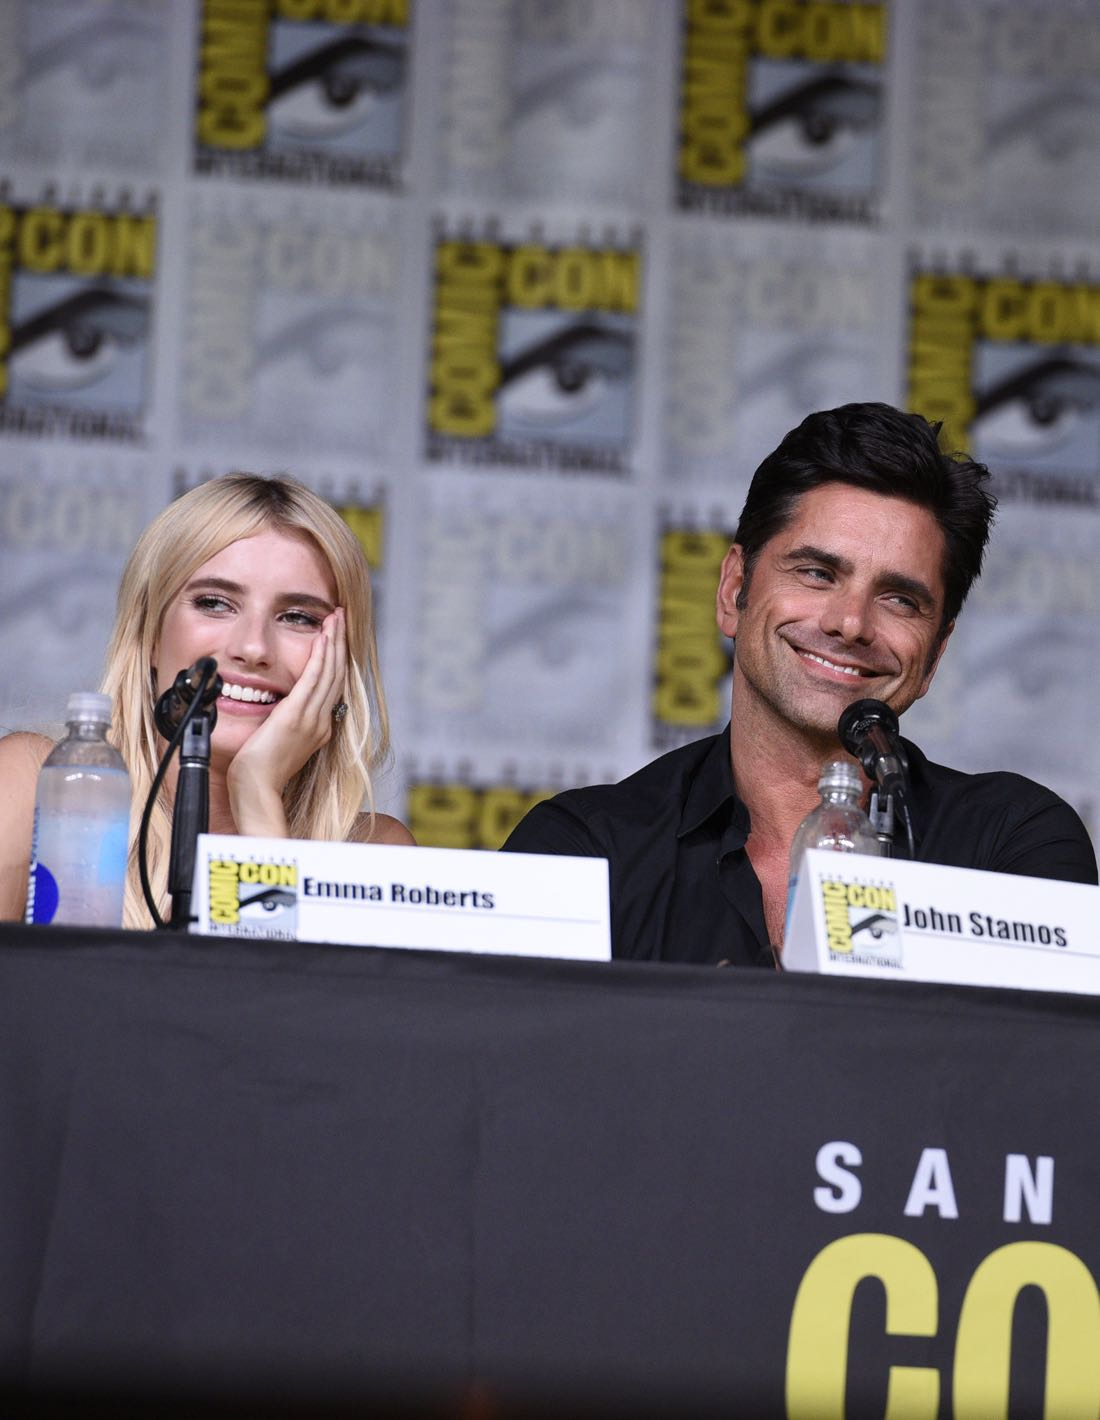 FOX FANFARE AT SAN DIEGO COMIC-CON © 2016: SCREAM QUEENS cast members Emma Roberts and John Stamos during the SCREAM QUEENS panel on Friday, July 22 at the FOX FANFARE AT SAN DIEGO COMIC-CON © 2016. CR: Alan Hess/FOX © 2016 FOX BROADCASTING